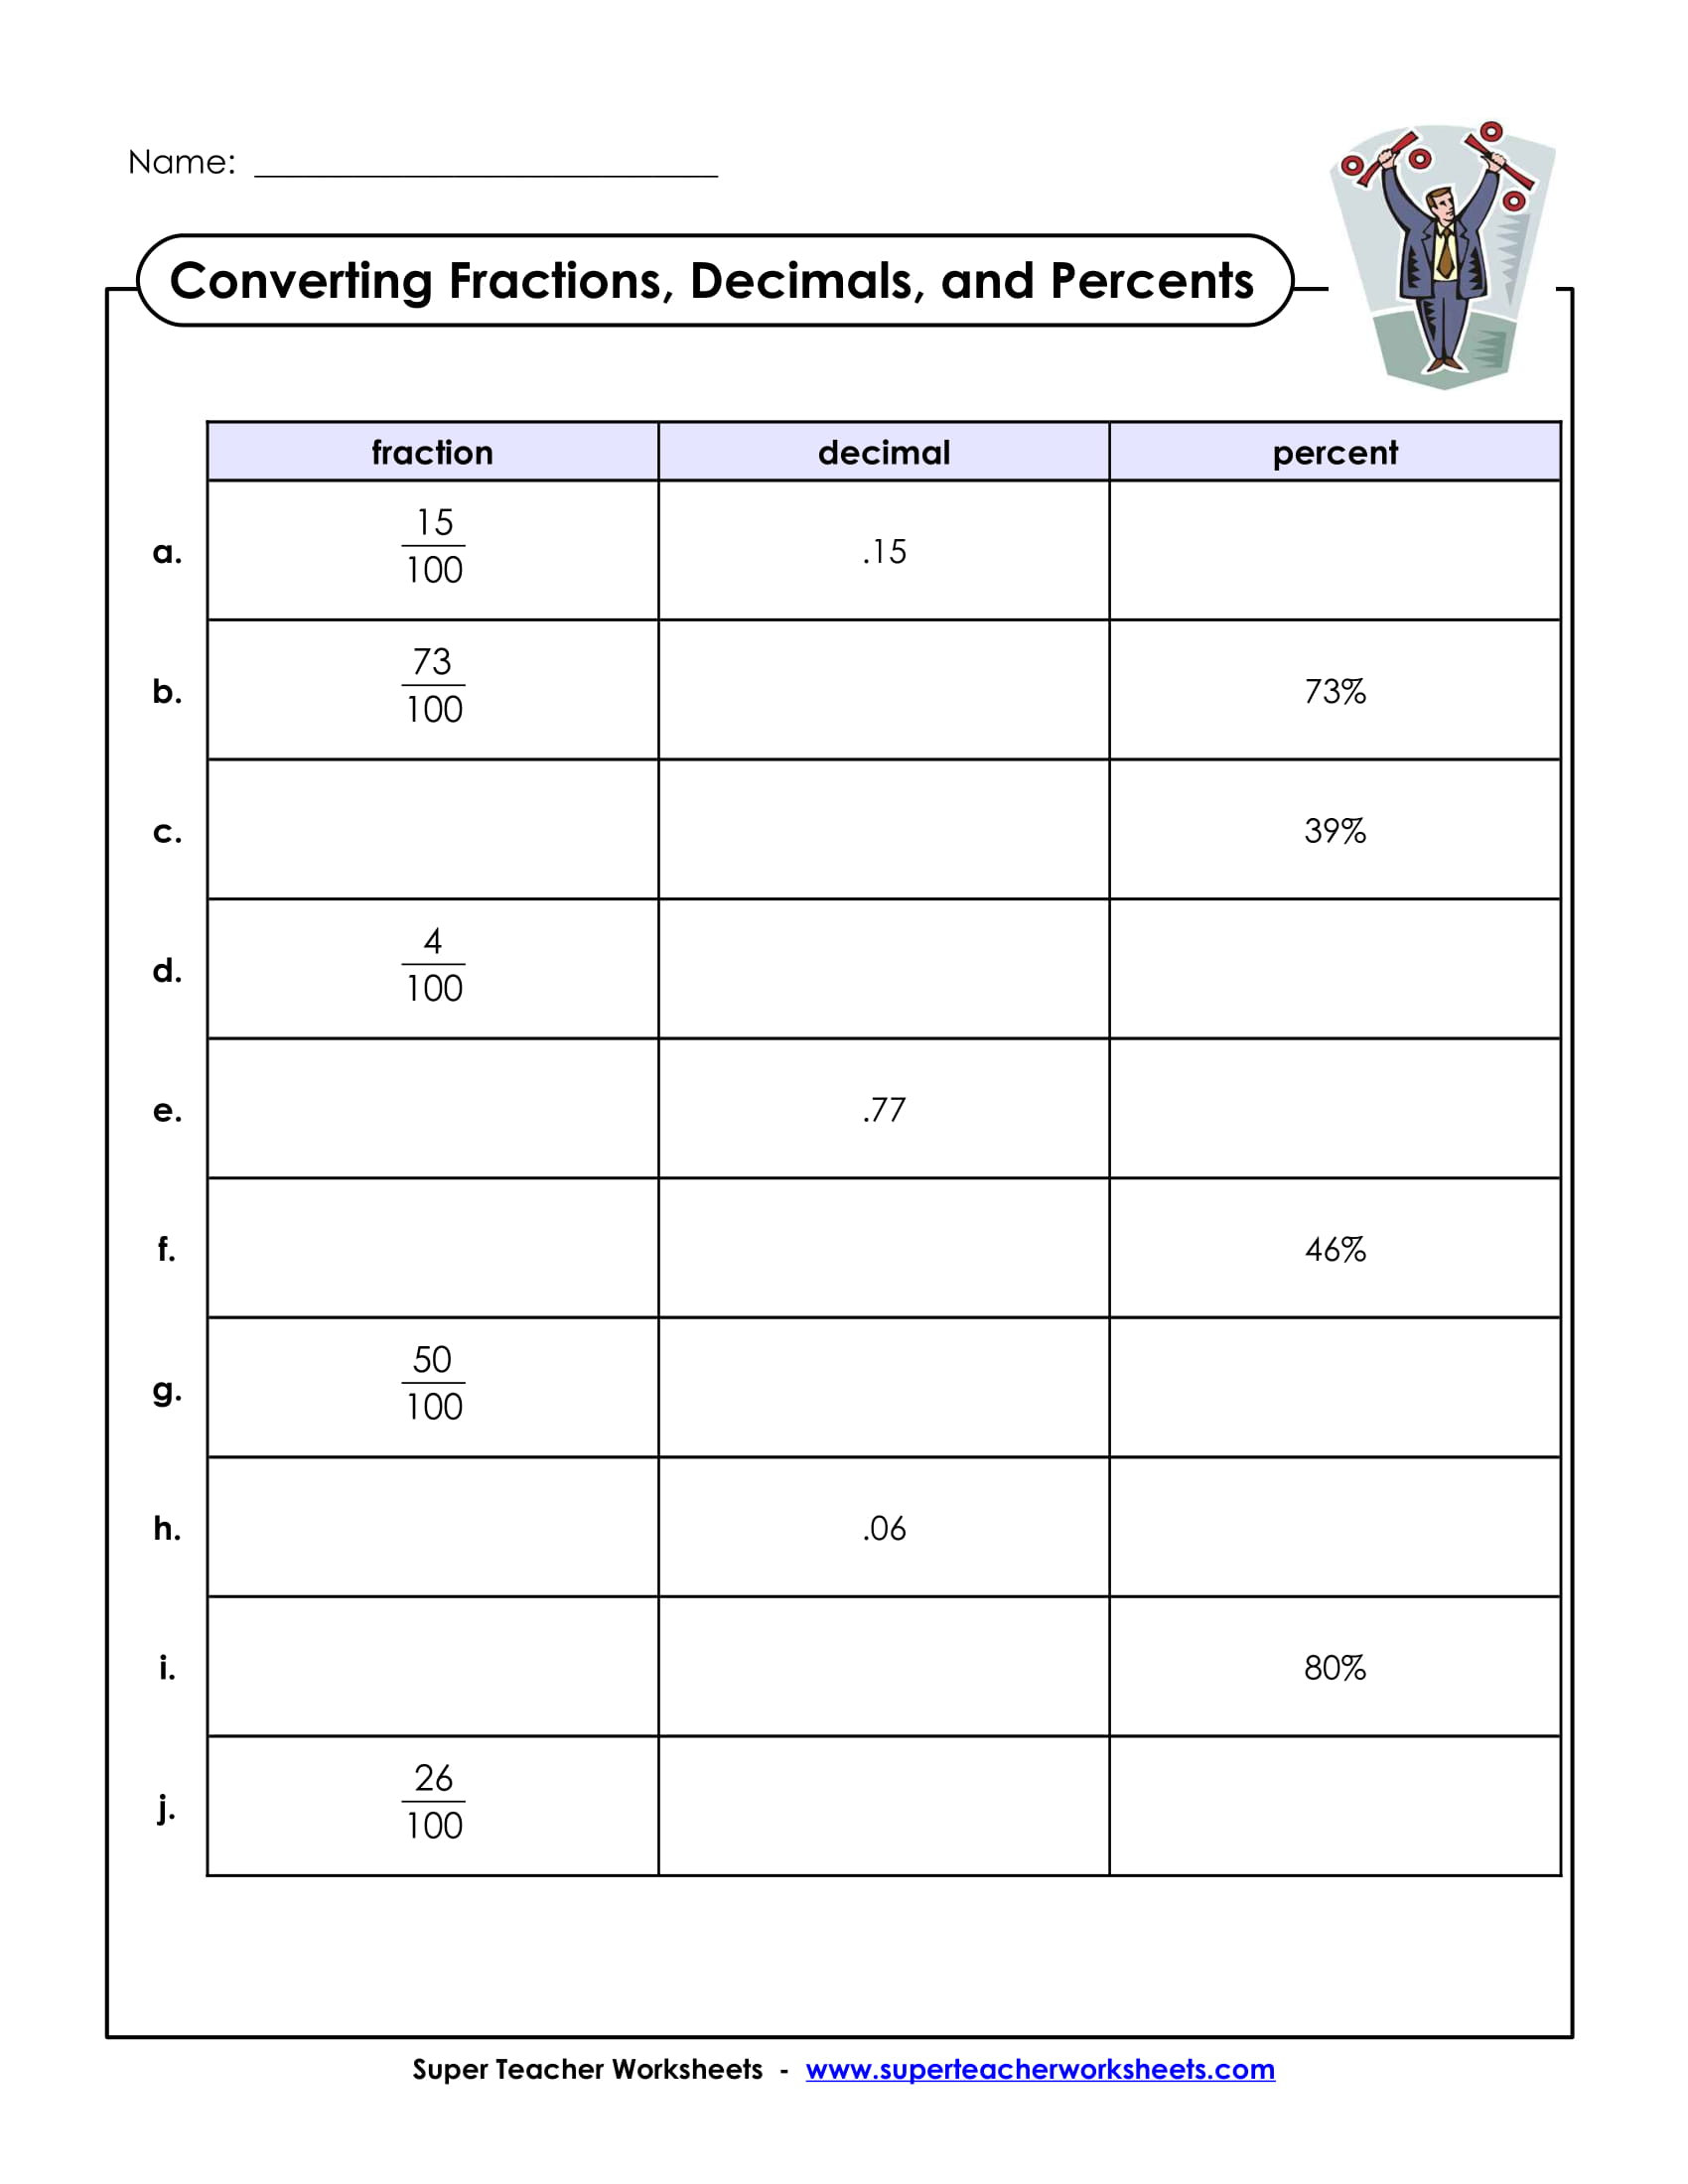 Fraction Decimal Percent Conversion Worksheet